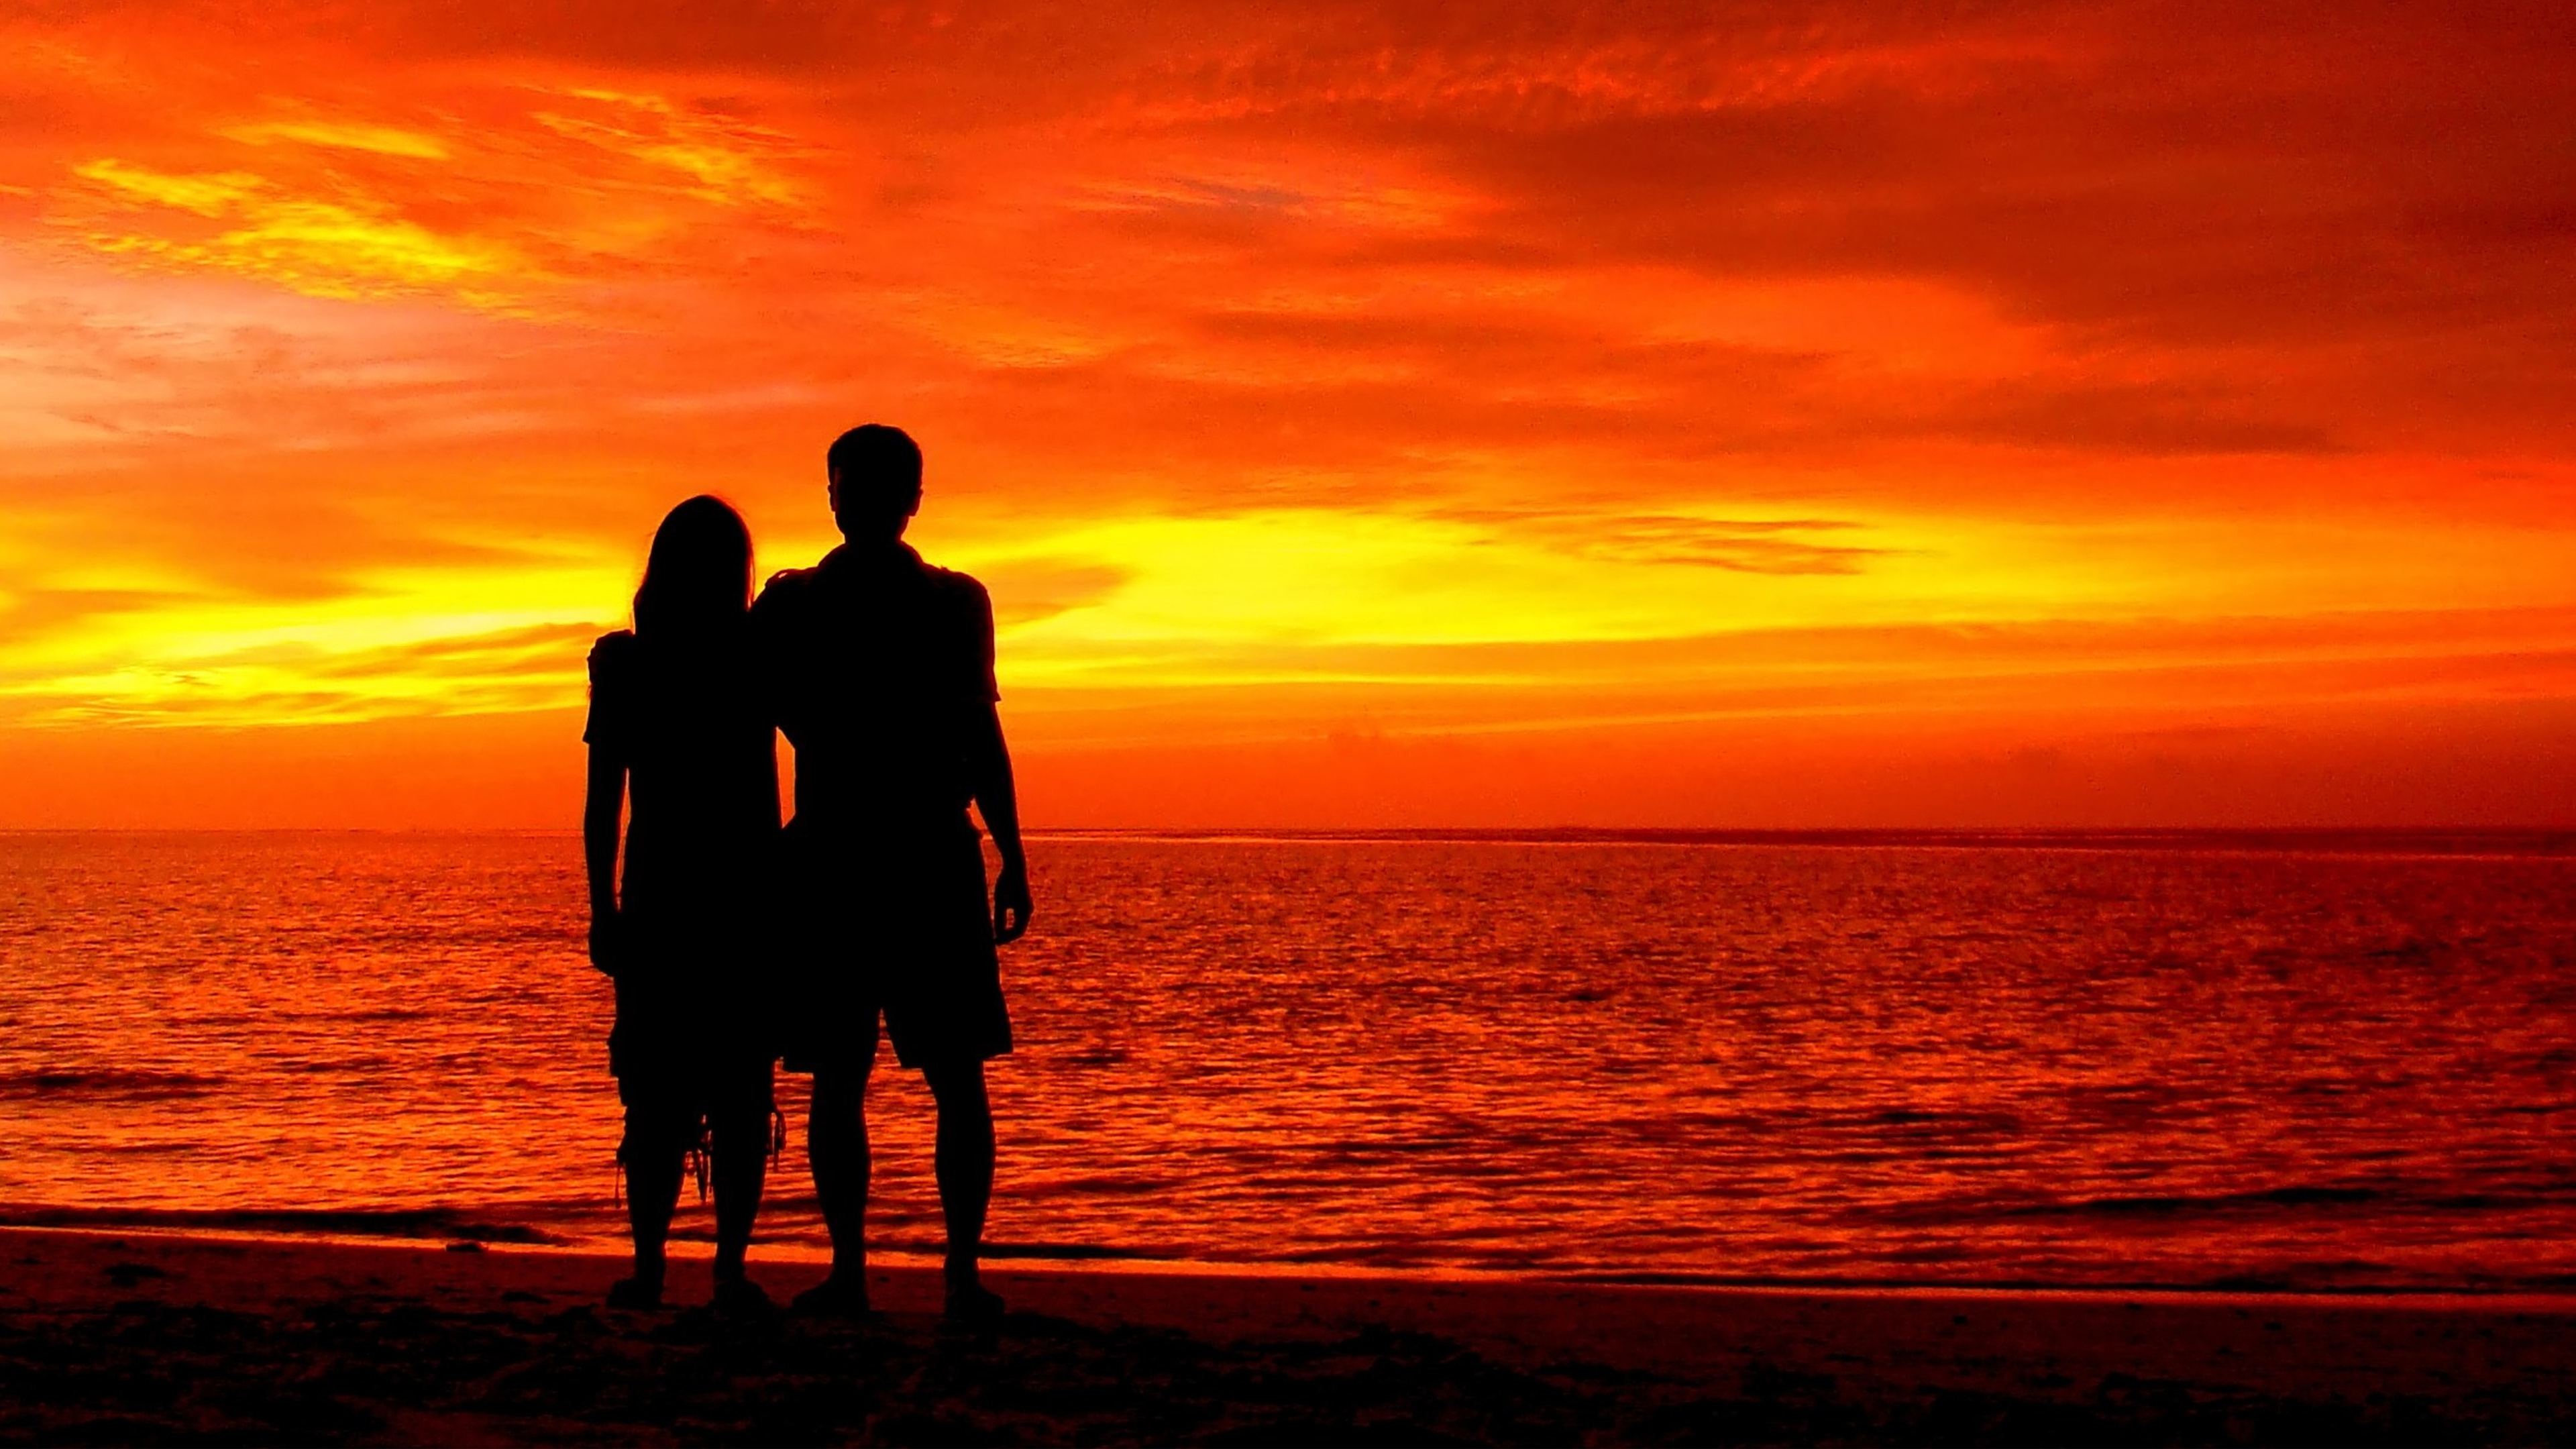 Cute Couples Holding Hands Hd Wallpapers Romantic Couple Sunset Silhouette Wallpapers Wallpaper Cave